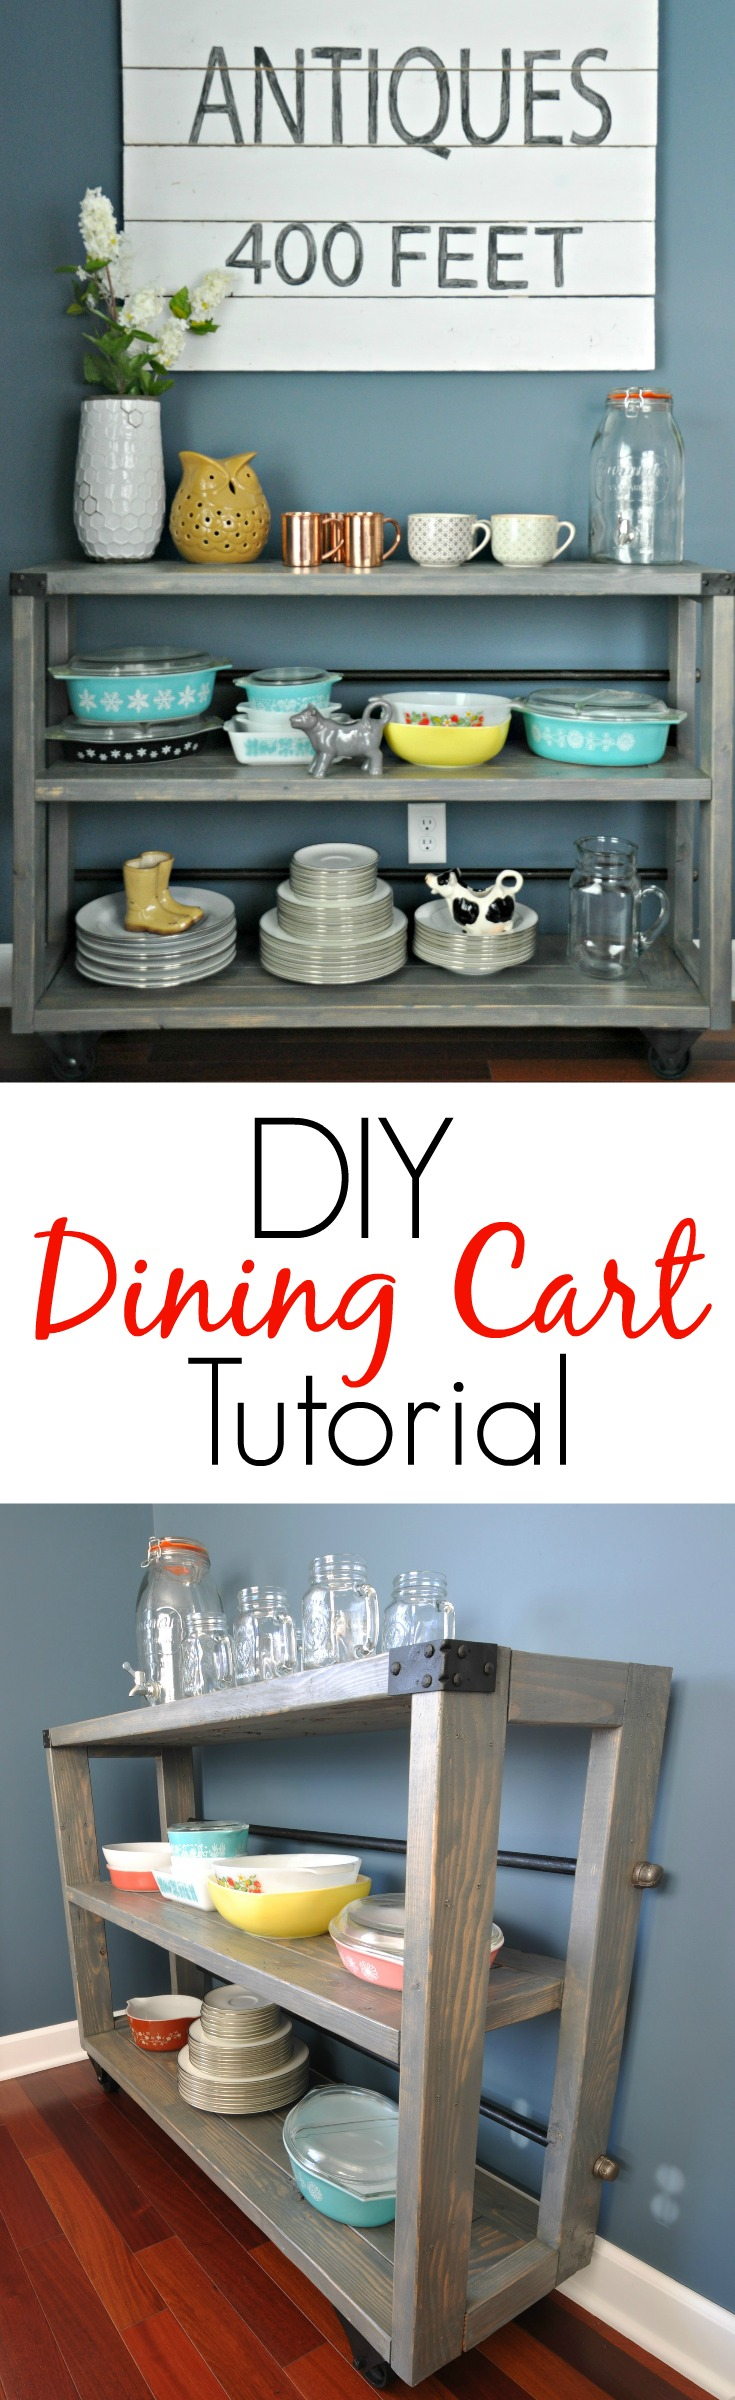 DIY Dining Cart Tutorial | Decor and the Dog